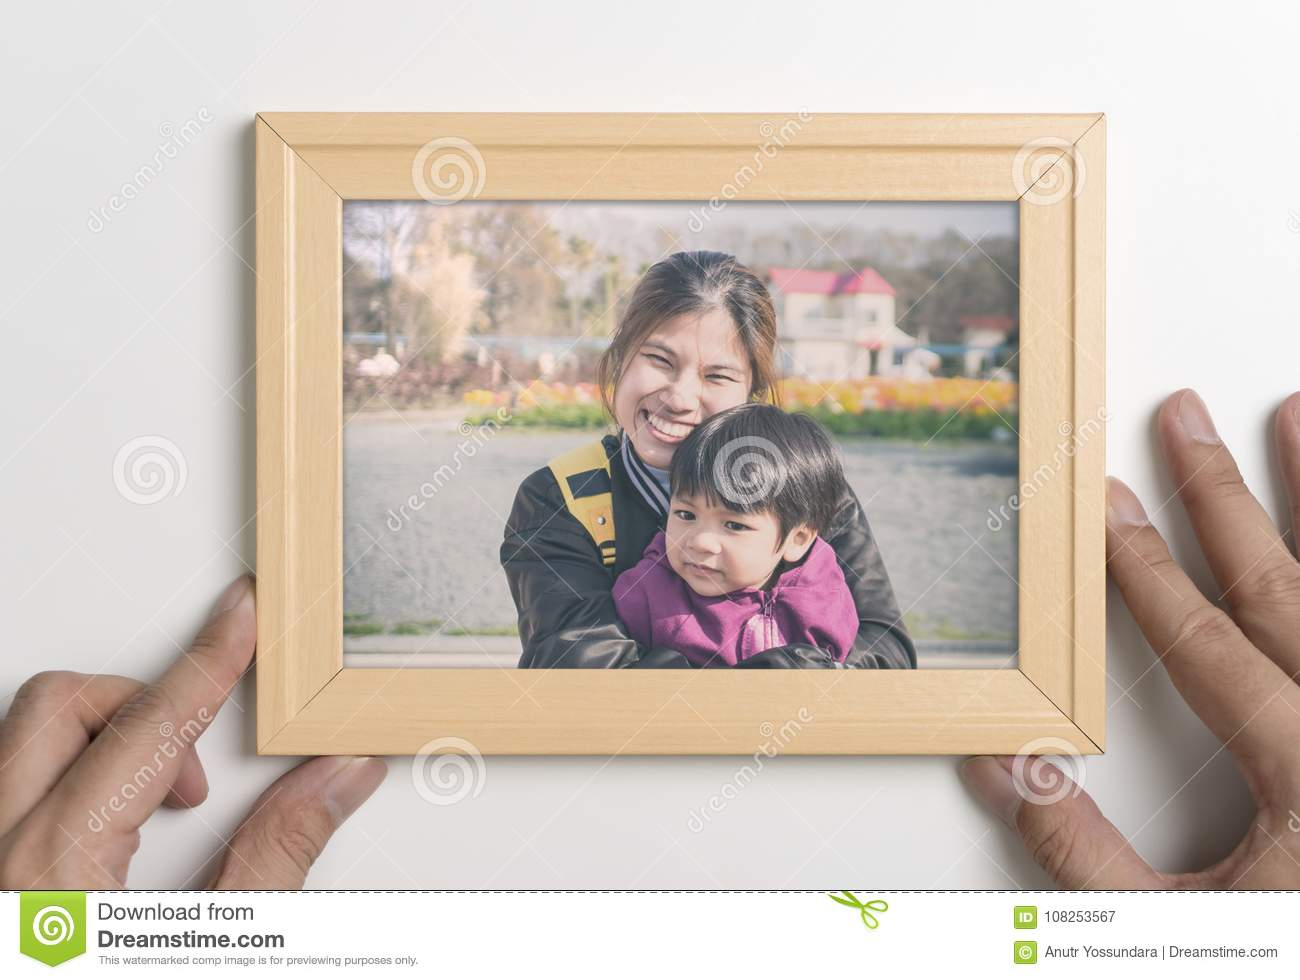 Daddy Hand Holding A Picture Of Mother And Son Stock Image - Image ...